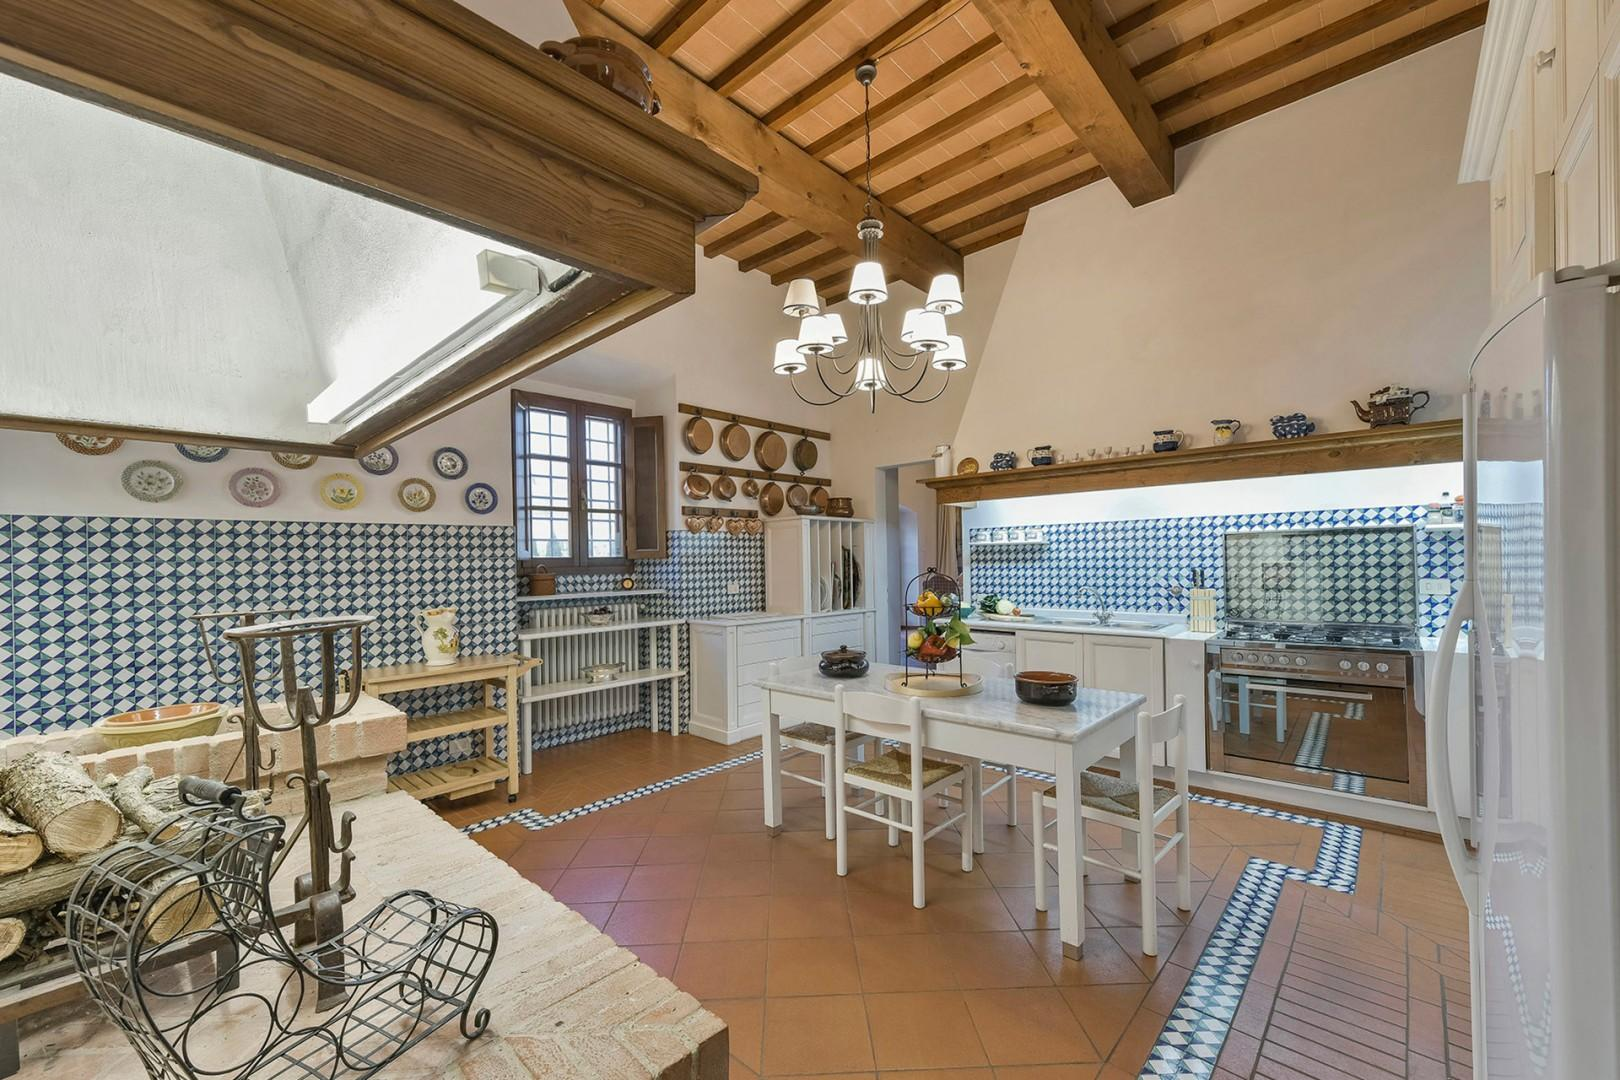 Beautiful fully-equipped kitchen with an original fireplace.